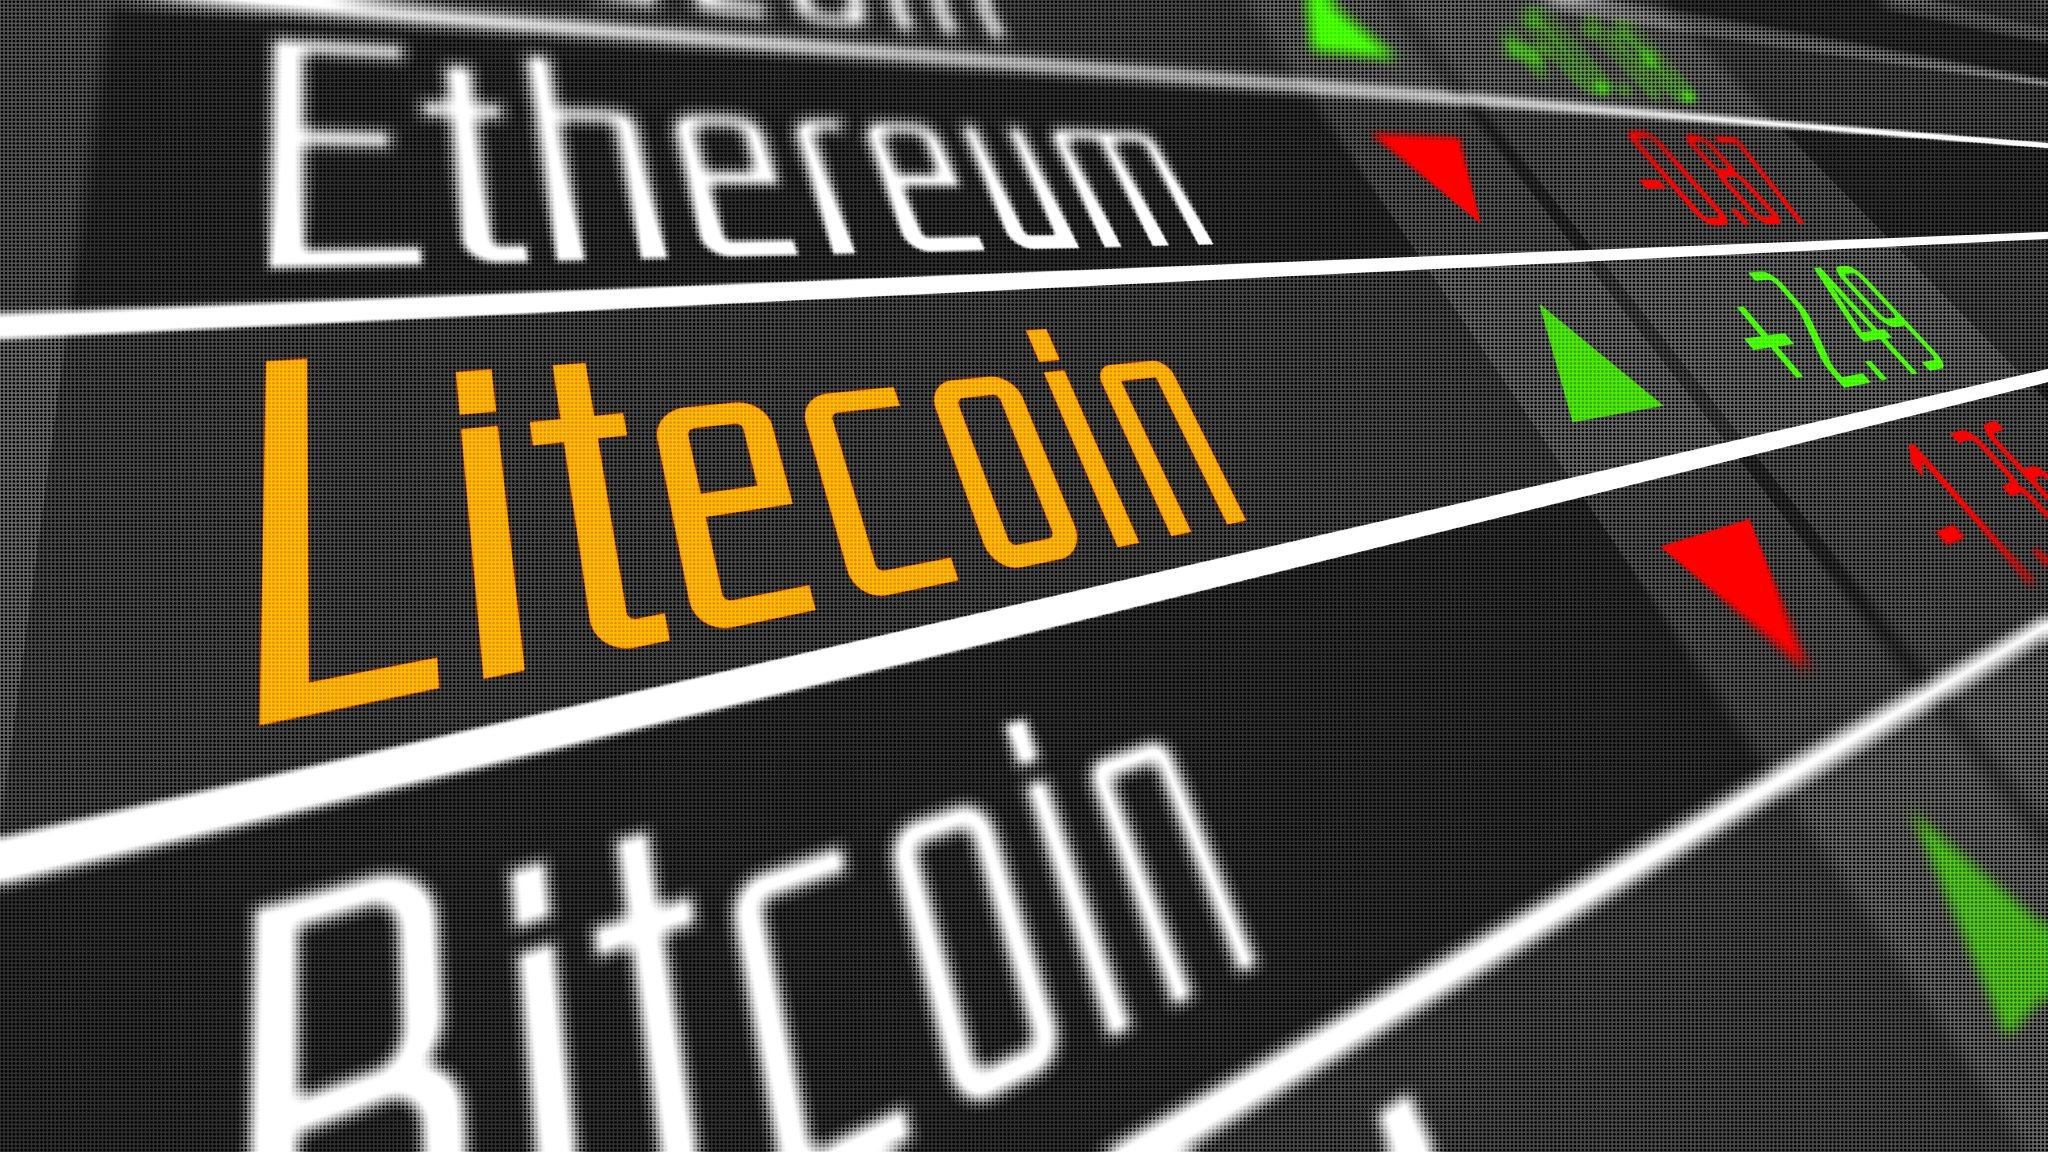 Litecoin Crypto Currency Market